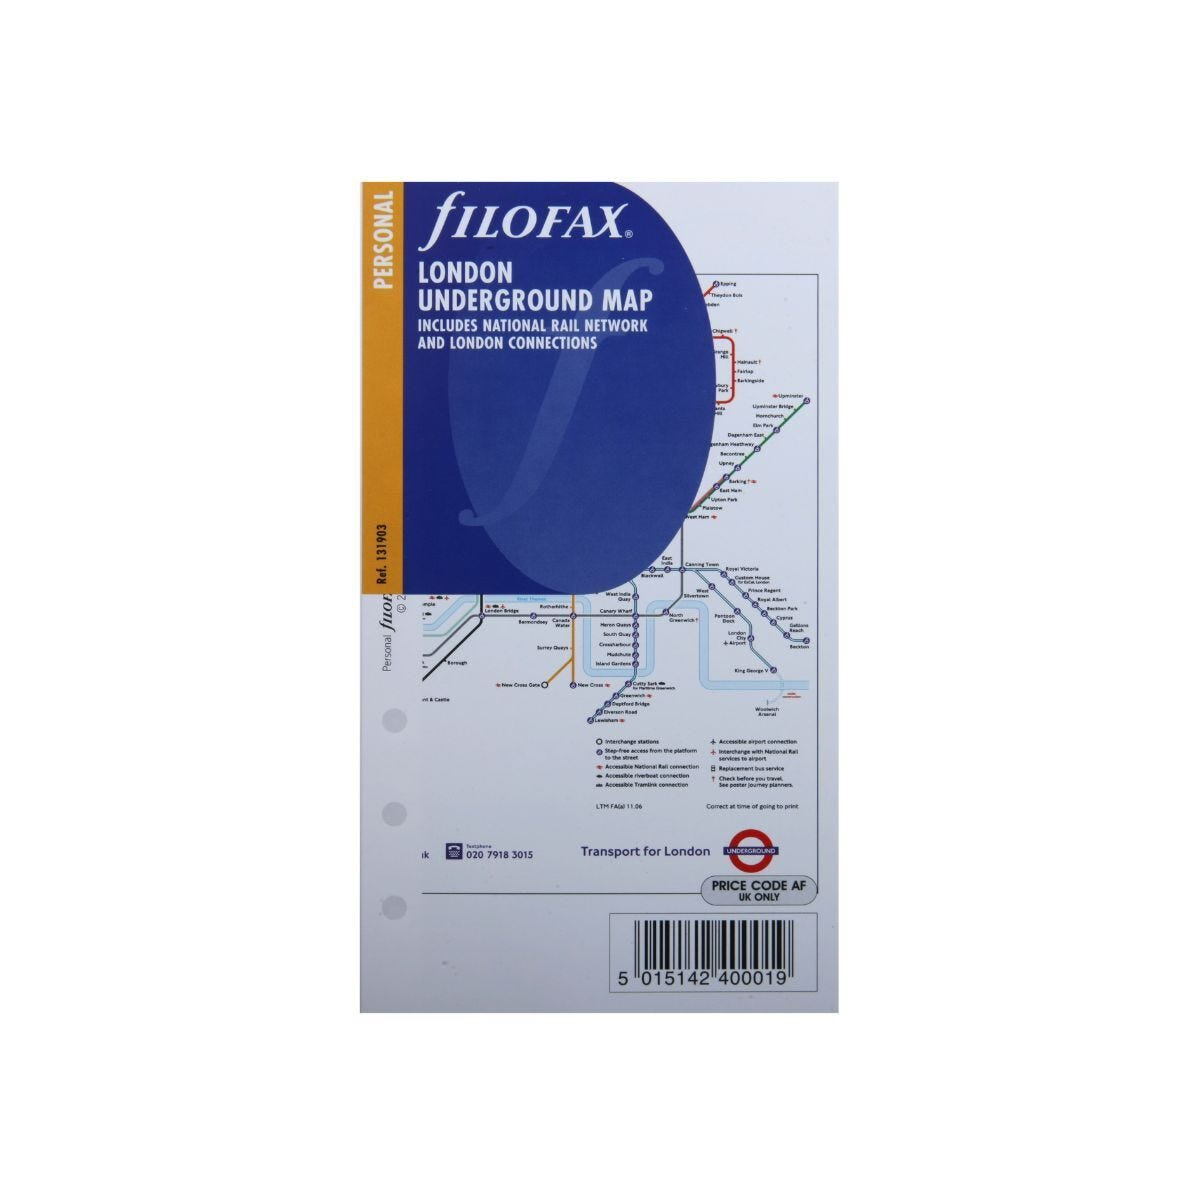 Filofax Refill London Underground Map Personal